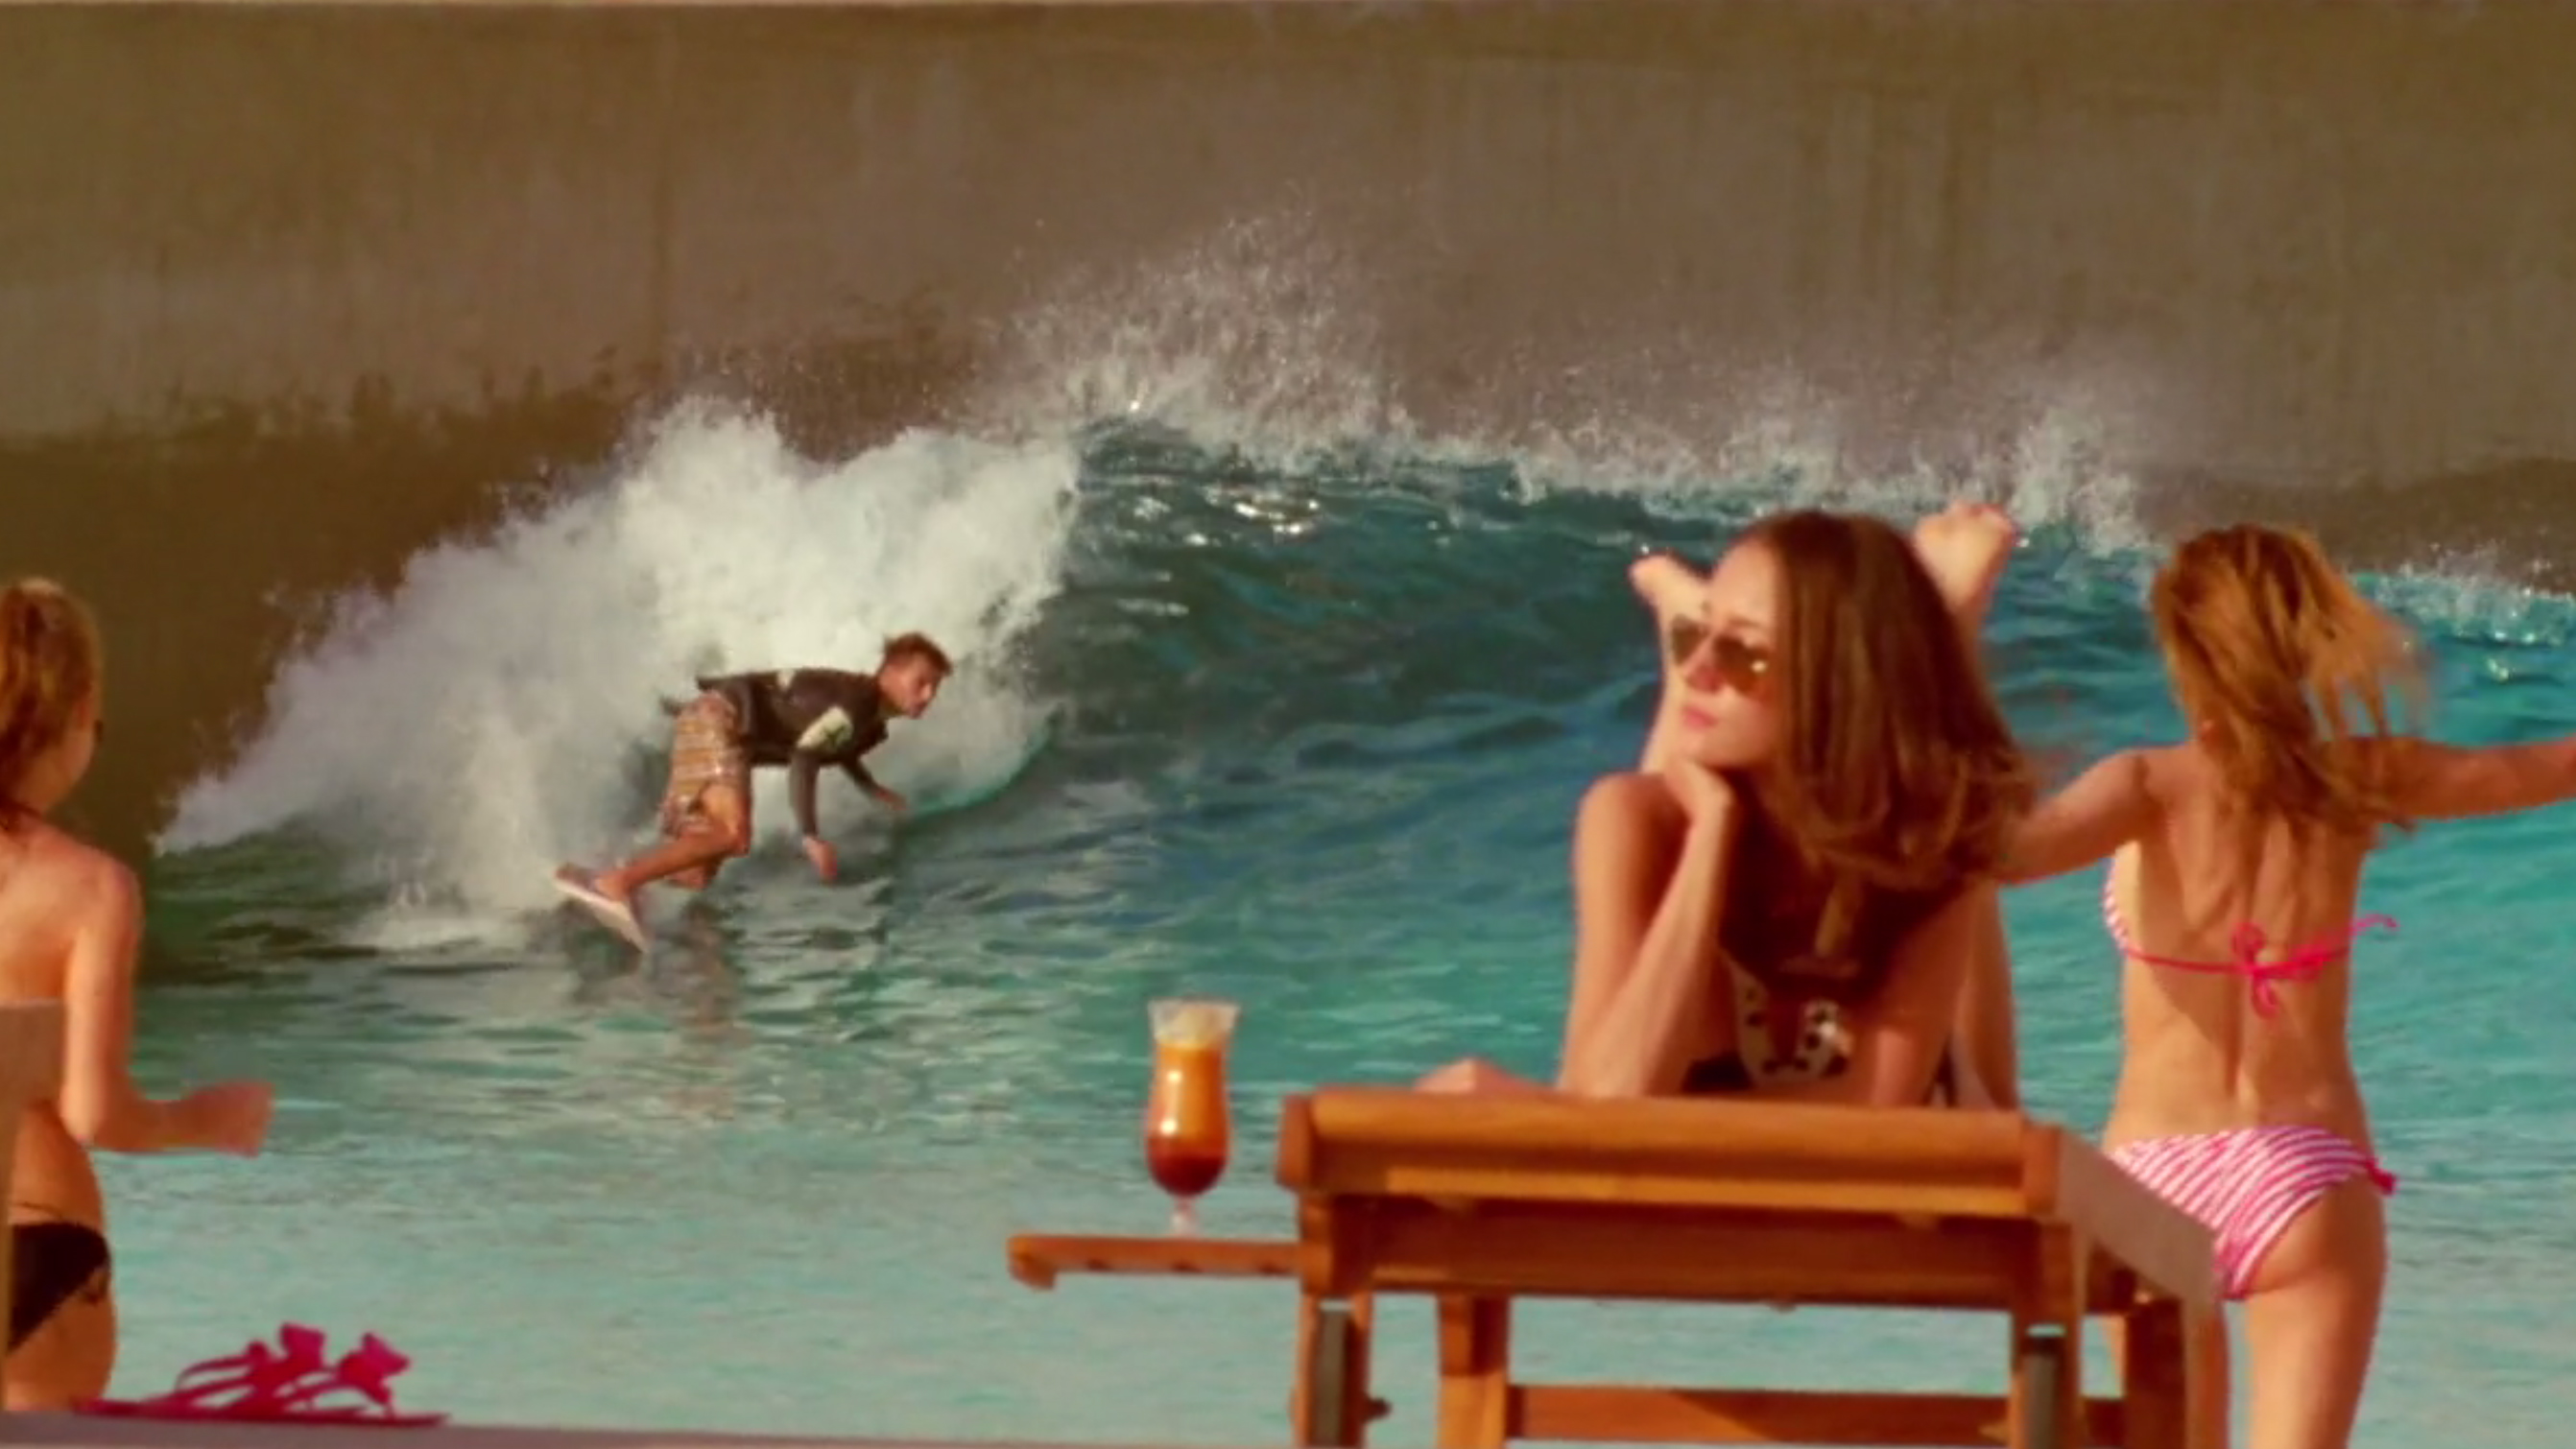 Dion Agius at wave pool in Dubai